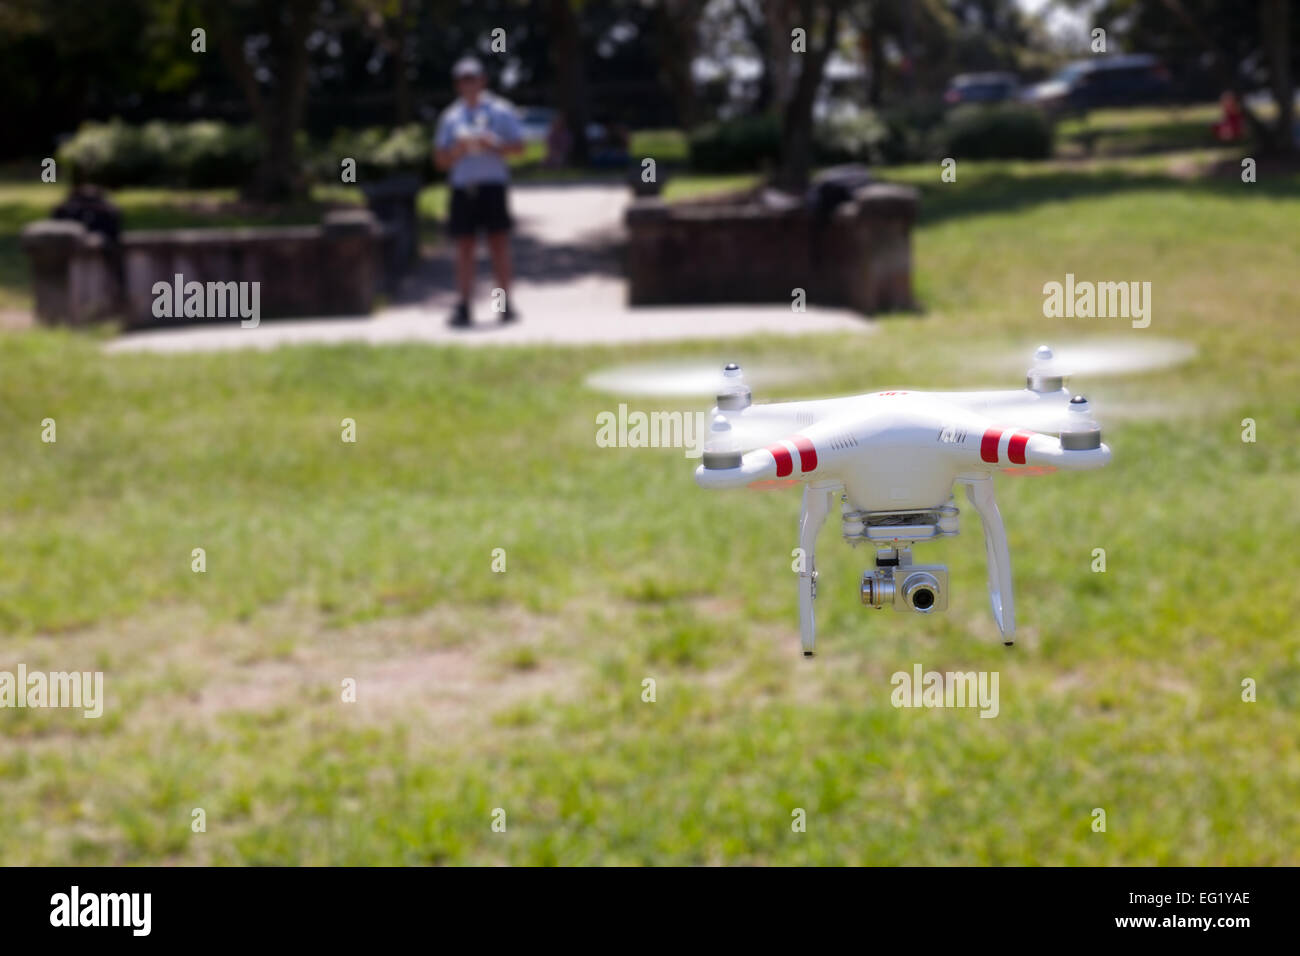 A flying drone with a gimbal and camera attached. With the photographer in the background. - Stock Image